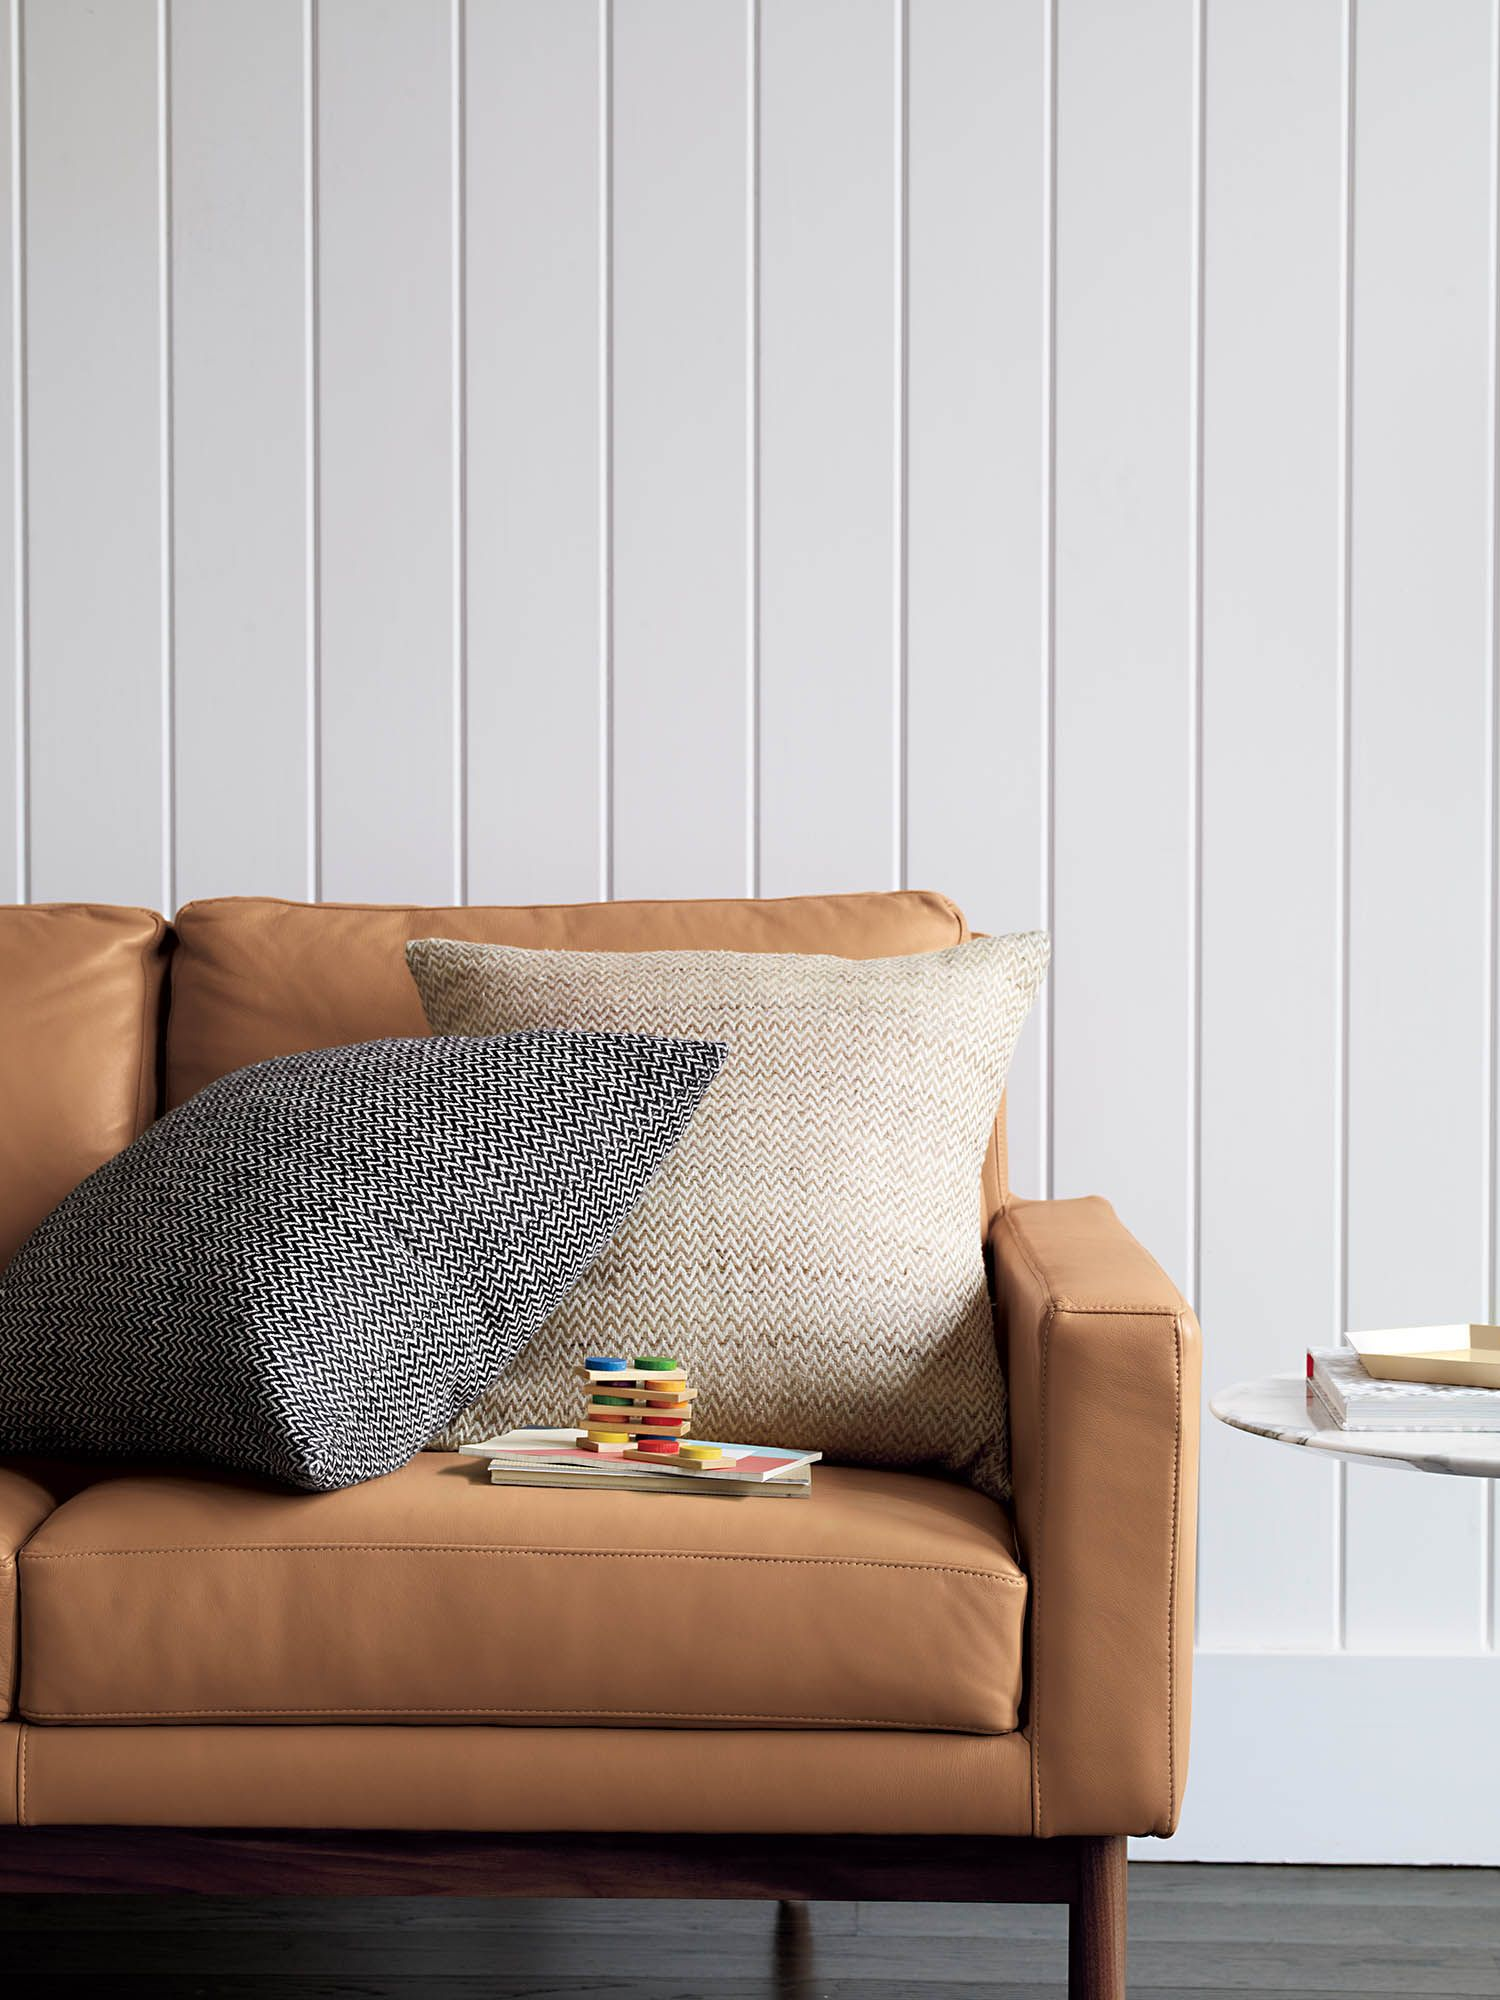 Raleigh Sofa For DWR By American Leather